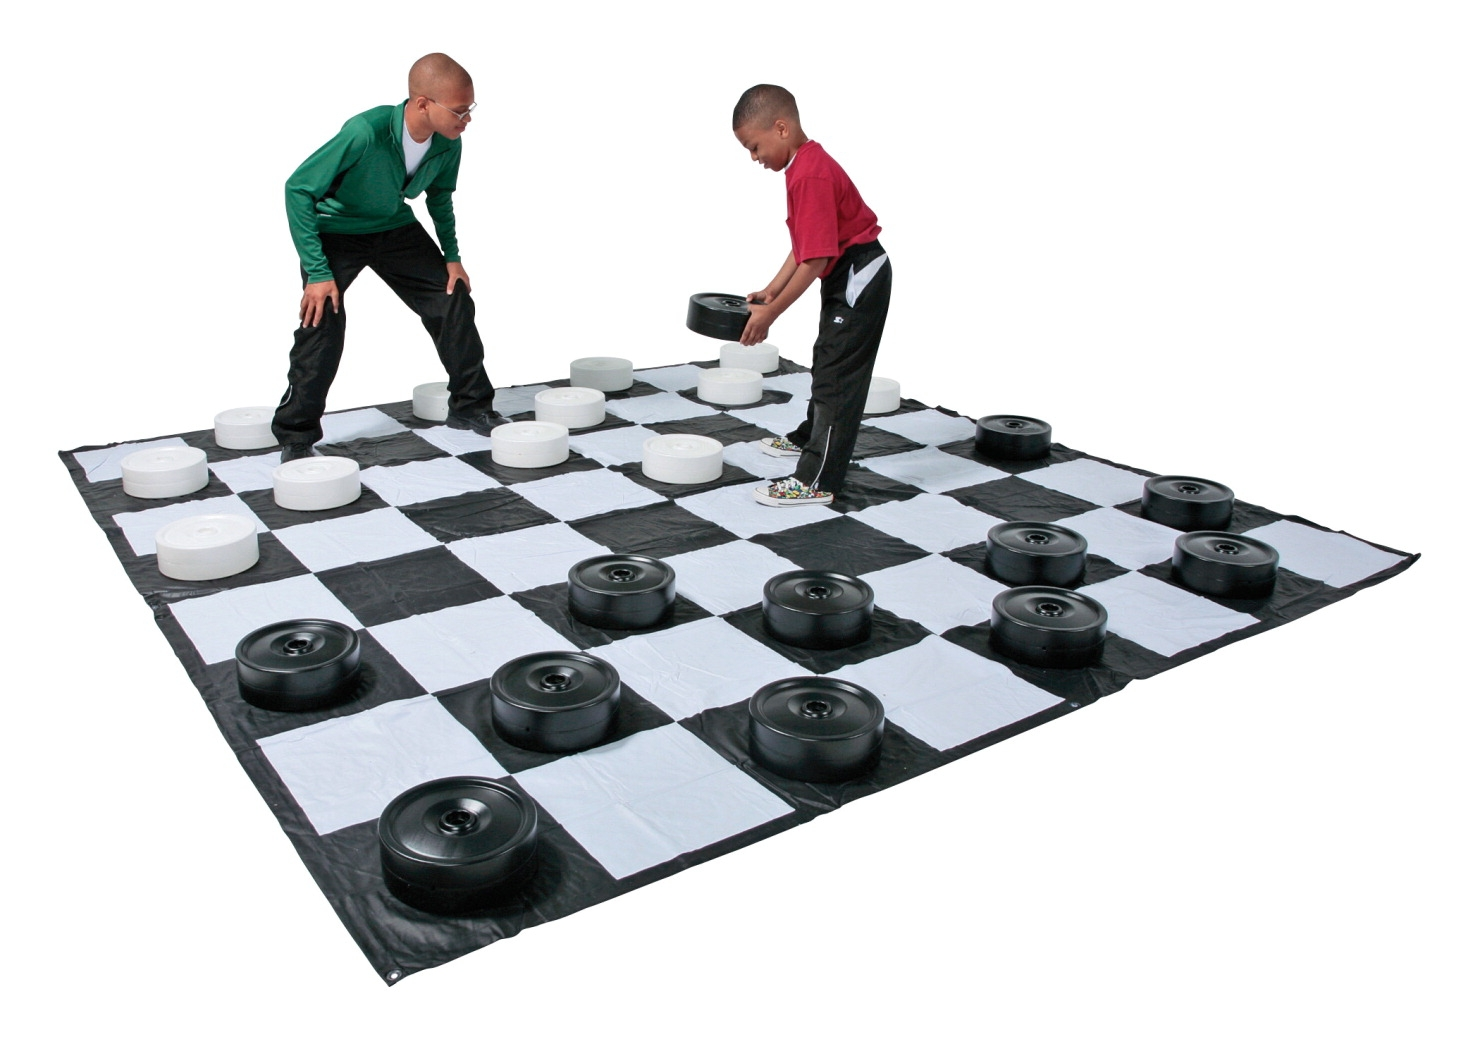 Toys Building Sets Building Sets & Equipment - 1321012 - Dom Giant Checkers Only; Set Of 24; White And Black 1321012